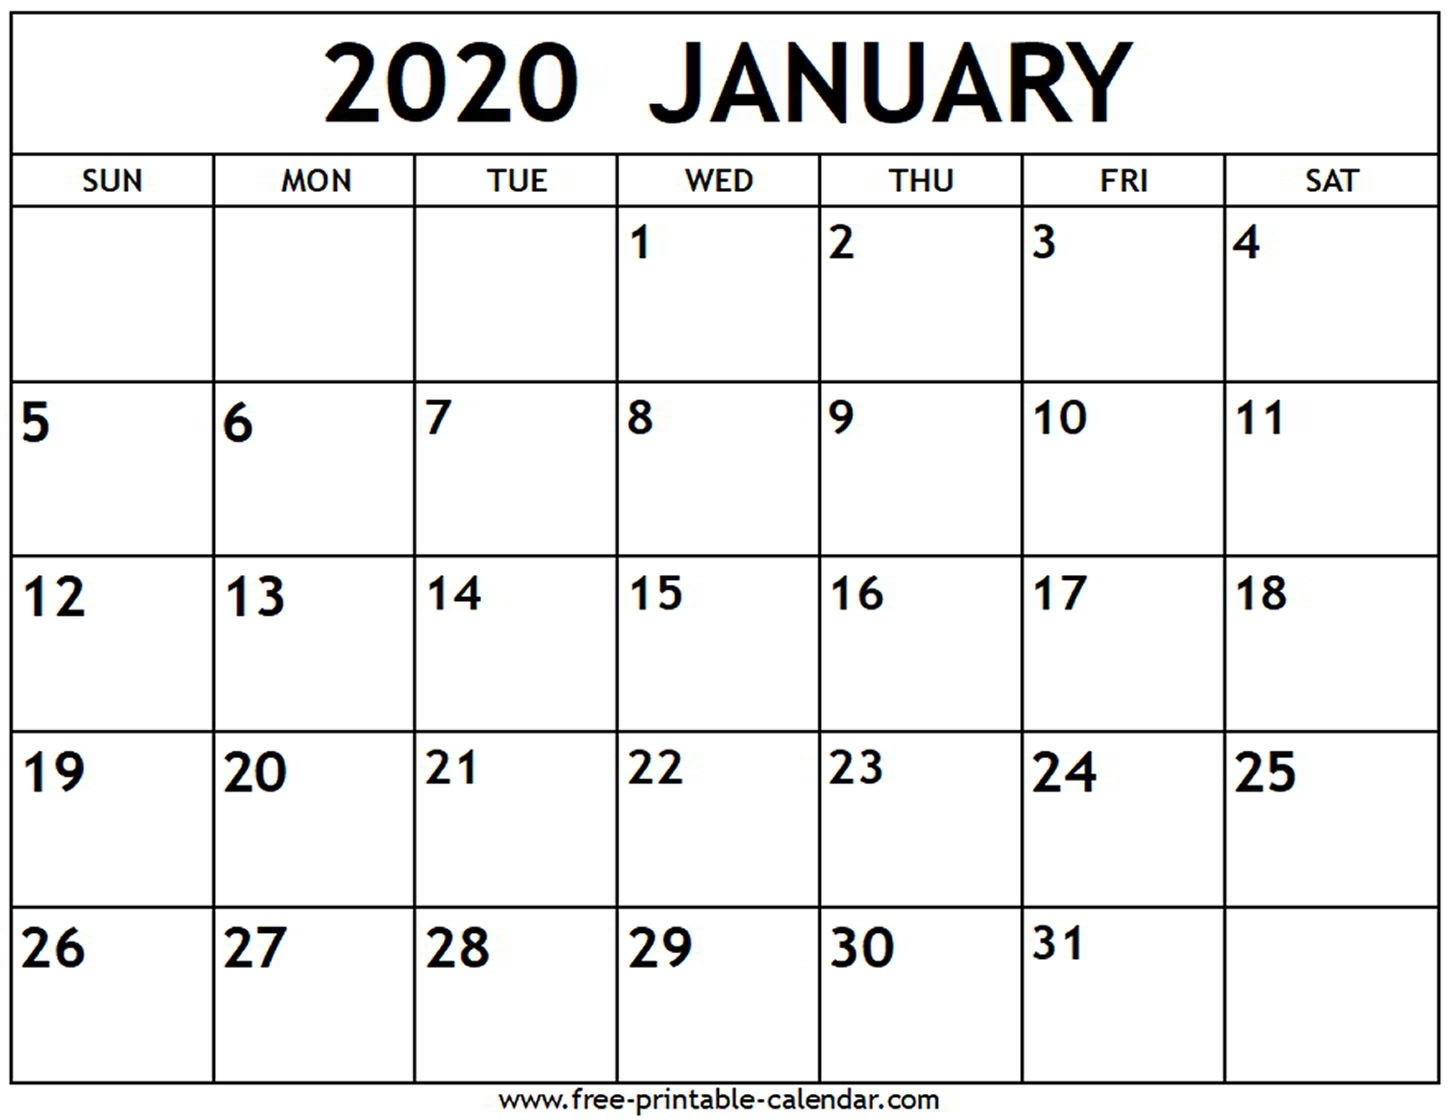 January 2020 Calendar - Free-Printable-Calendar-Free Printable Calendar 2020 Bill Paying Monthly